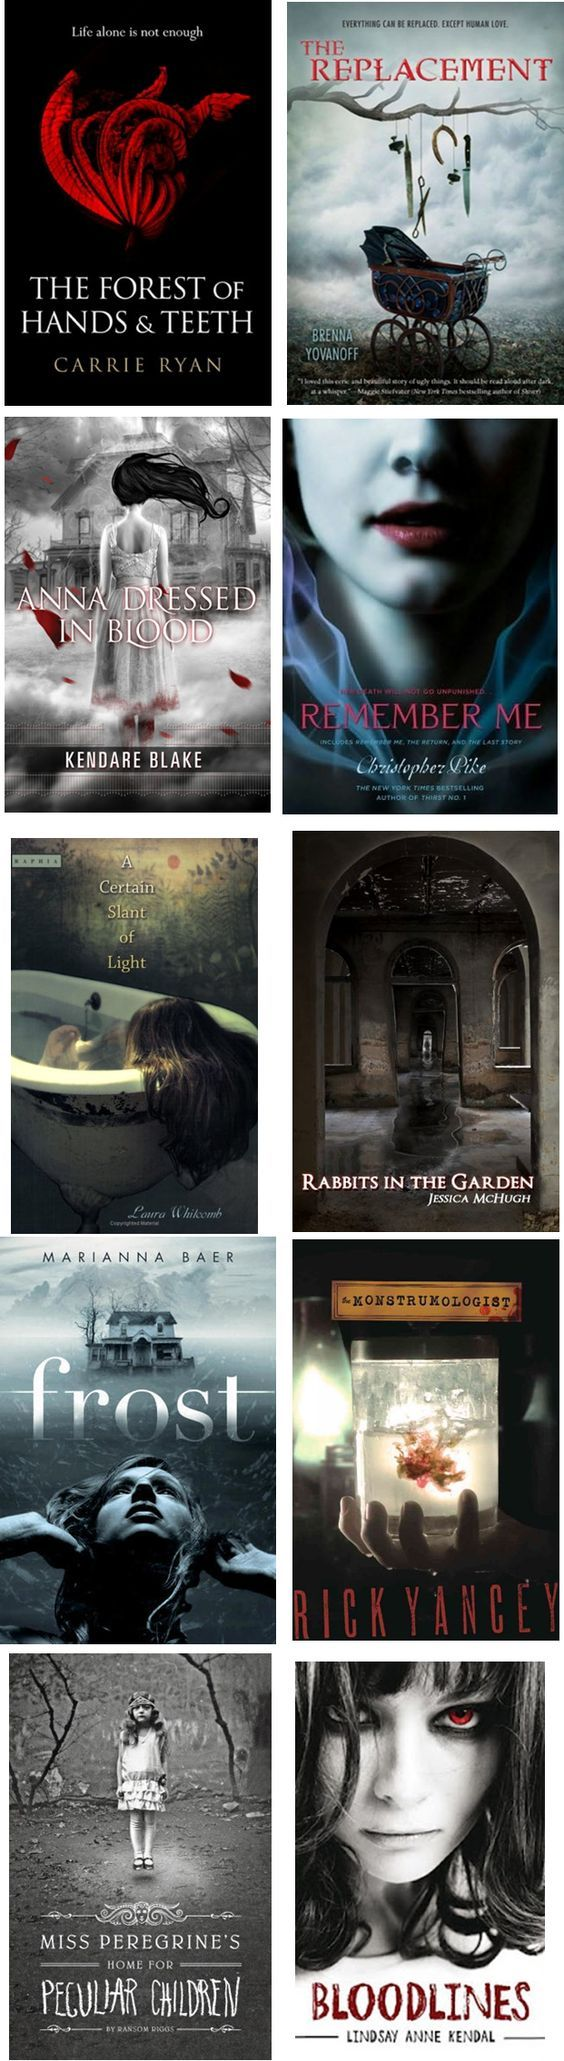 Good scary/creepy books: have read a few that were really good, may try the rest